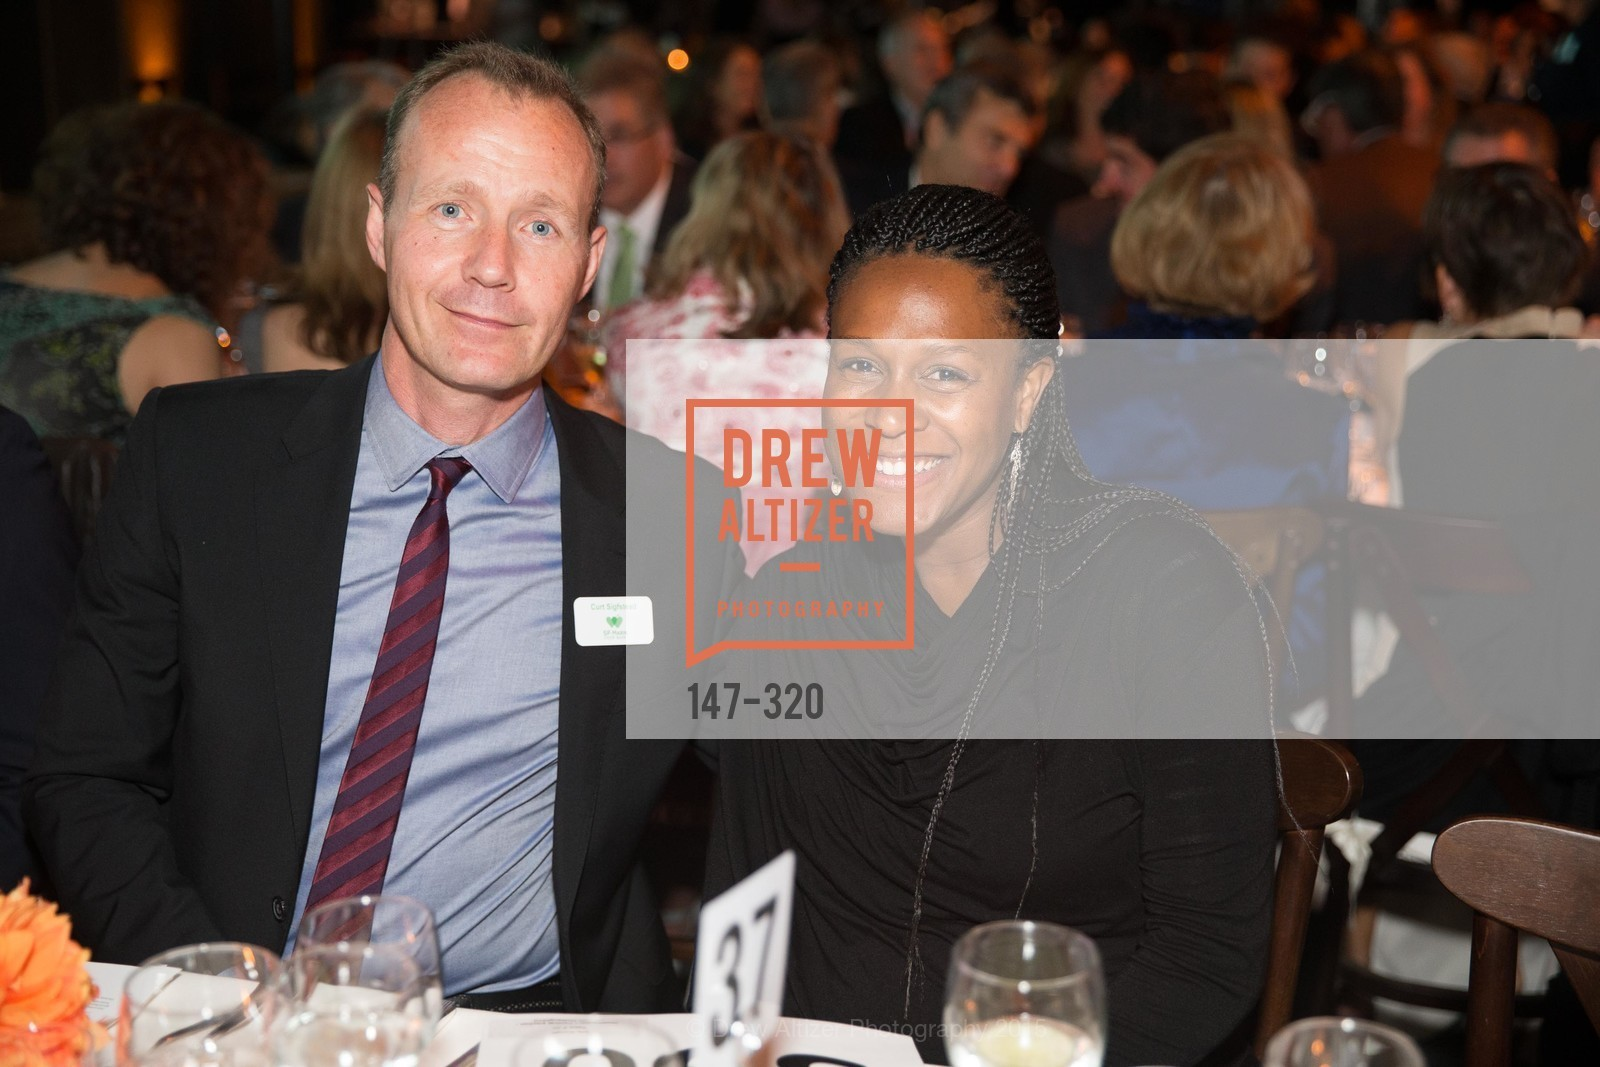 Curt Sigfstead, Nadia Prengel, SF - Marin Food Bank Presents ONE BIG TABLE, SF- Marin Food Bank. 900 Pennsylvania Ave, September 26th, 2015,Drew Altizer, Drew Altizer Photography, full-service agency, private events, San Francisco photographer, photographer california